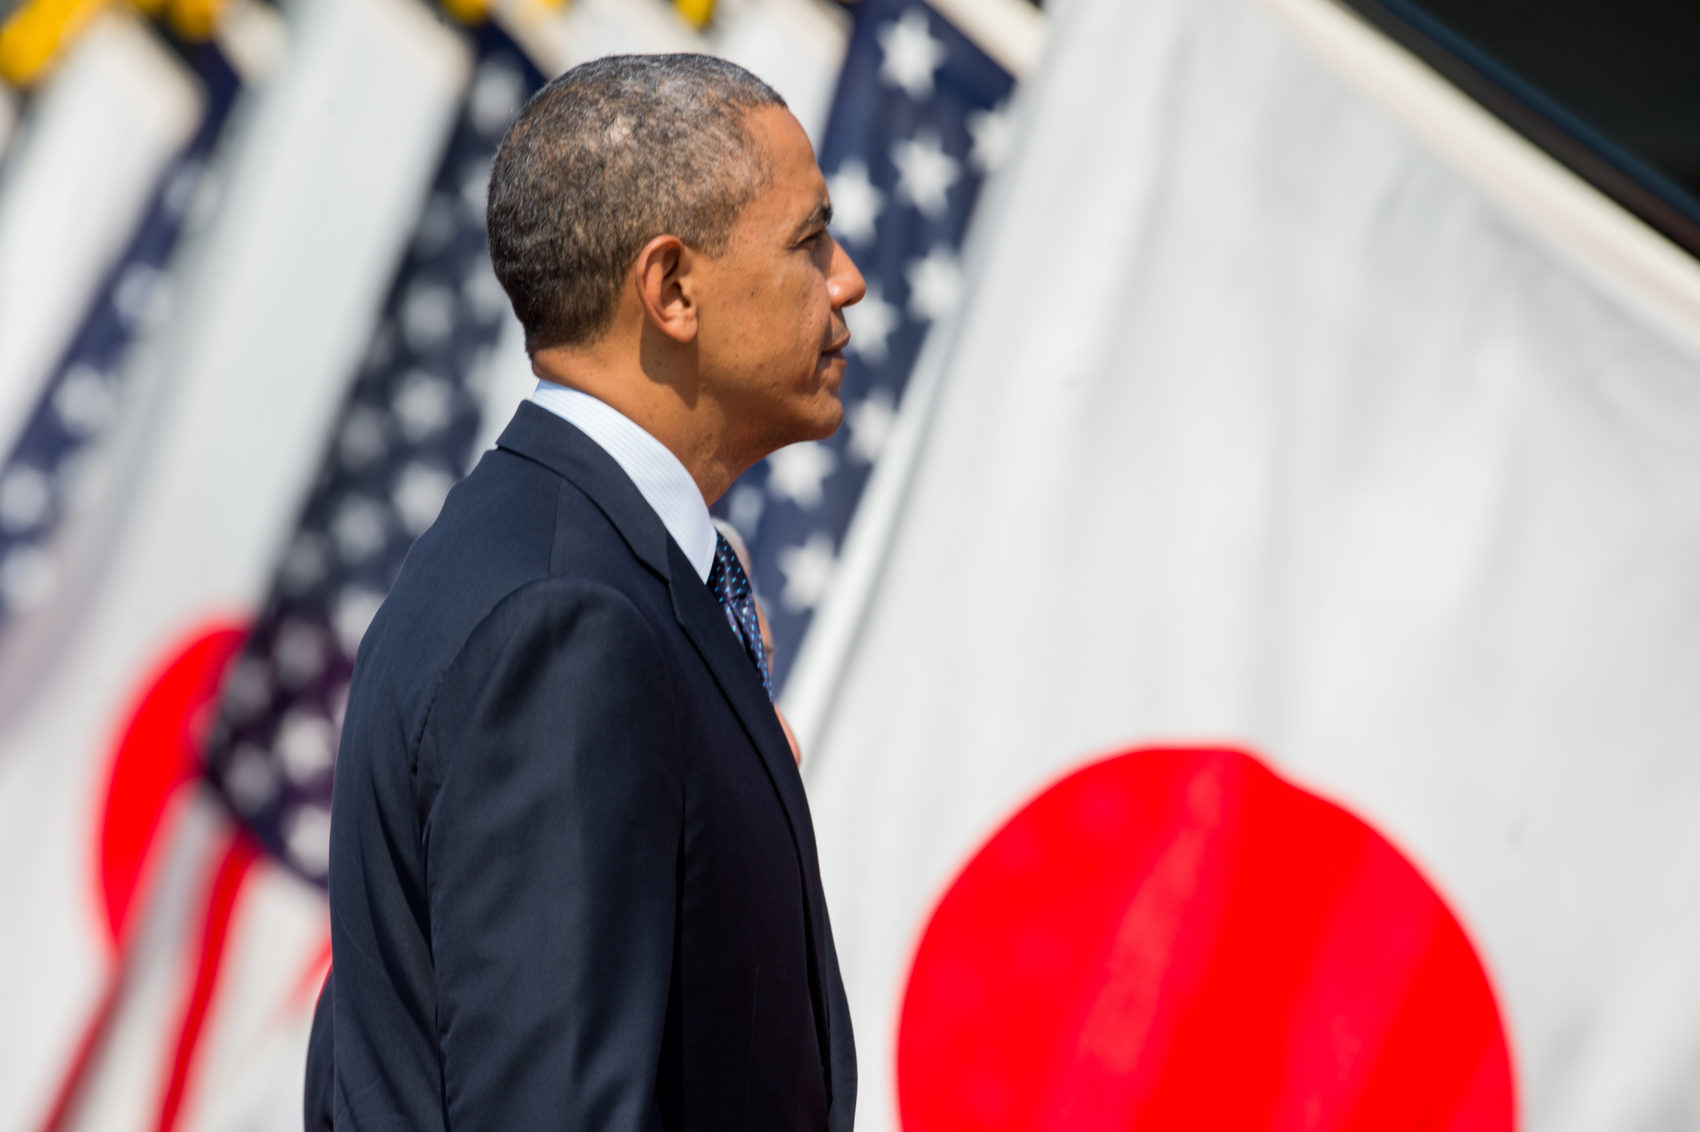 The Next President Should Outline the Real Lessons of Hiroshima from Pearl Harbor